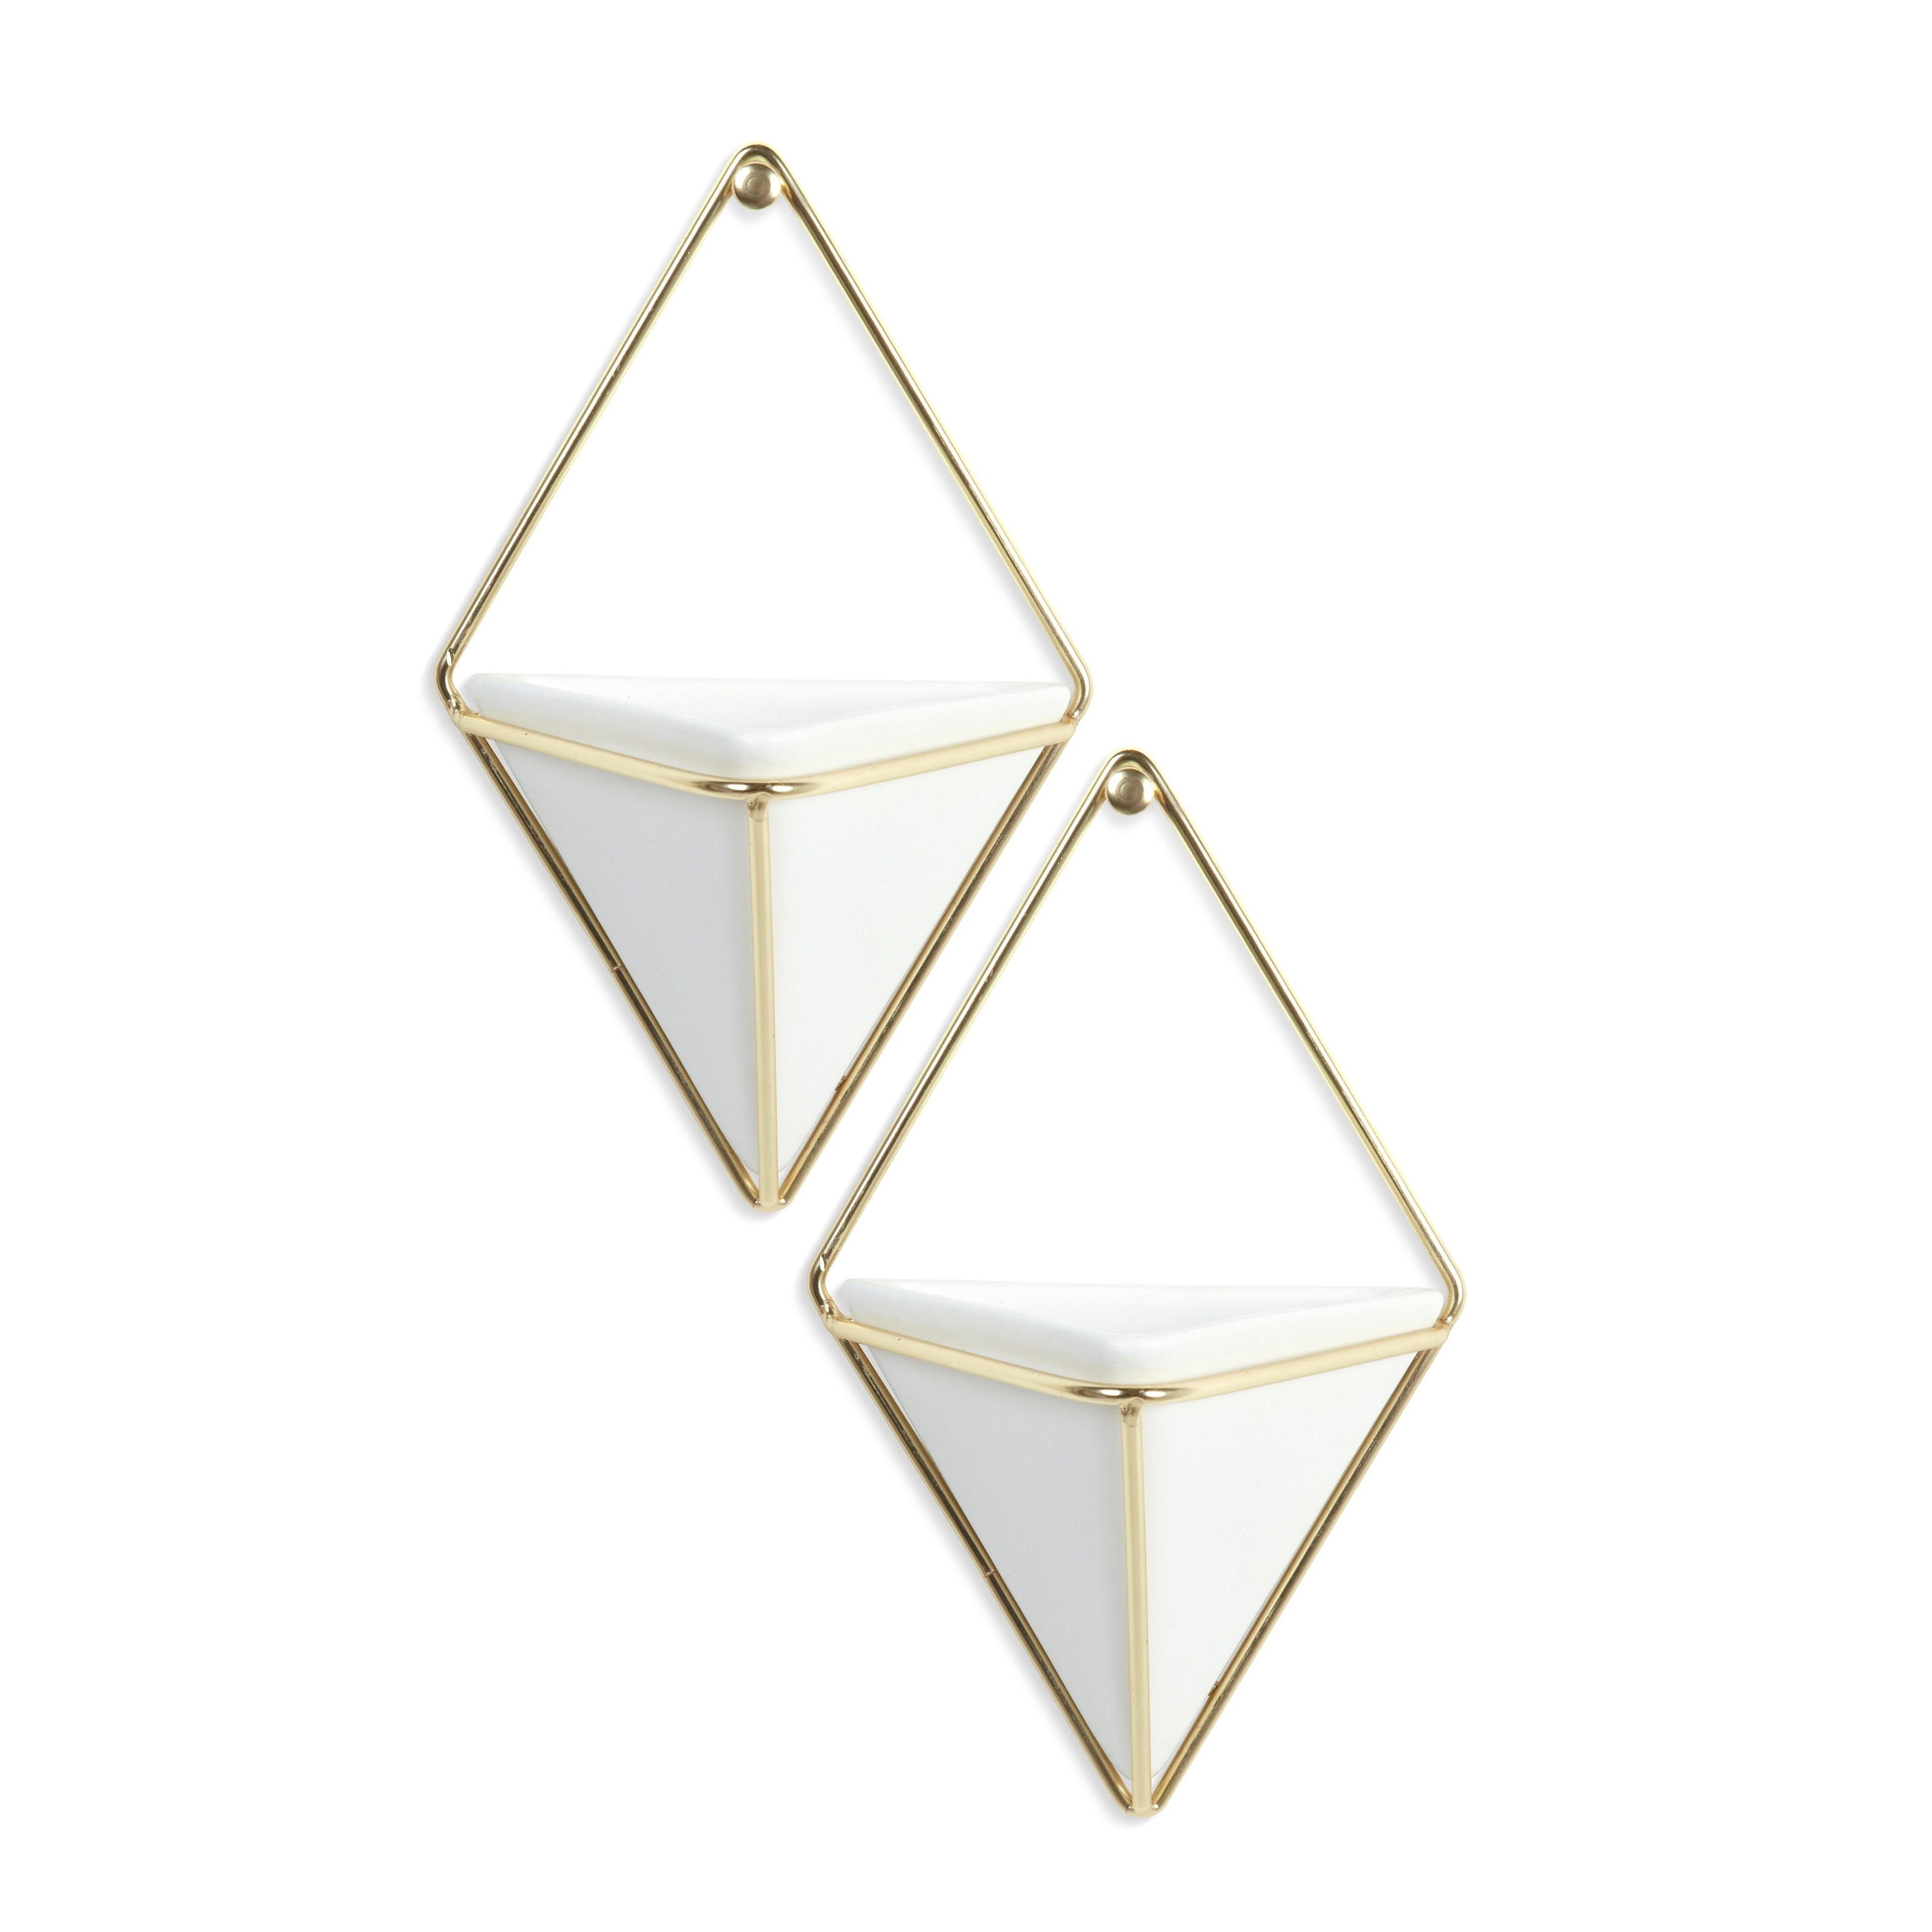 Most Current 2 Piece Trigg Wall Decor Sets (Set Of 2) With Regard To Shop Umbra Trigg Hanging Planter & Wall Decor (Set Of 2) – Free (Gallery 6 of 20)